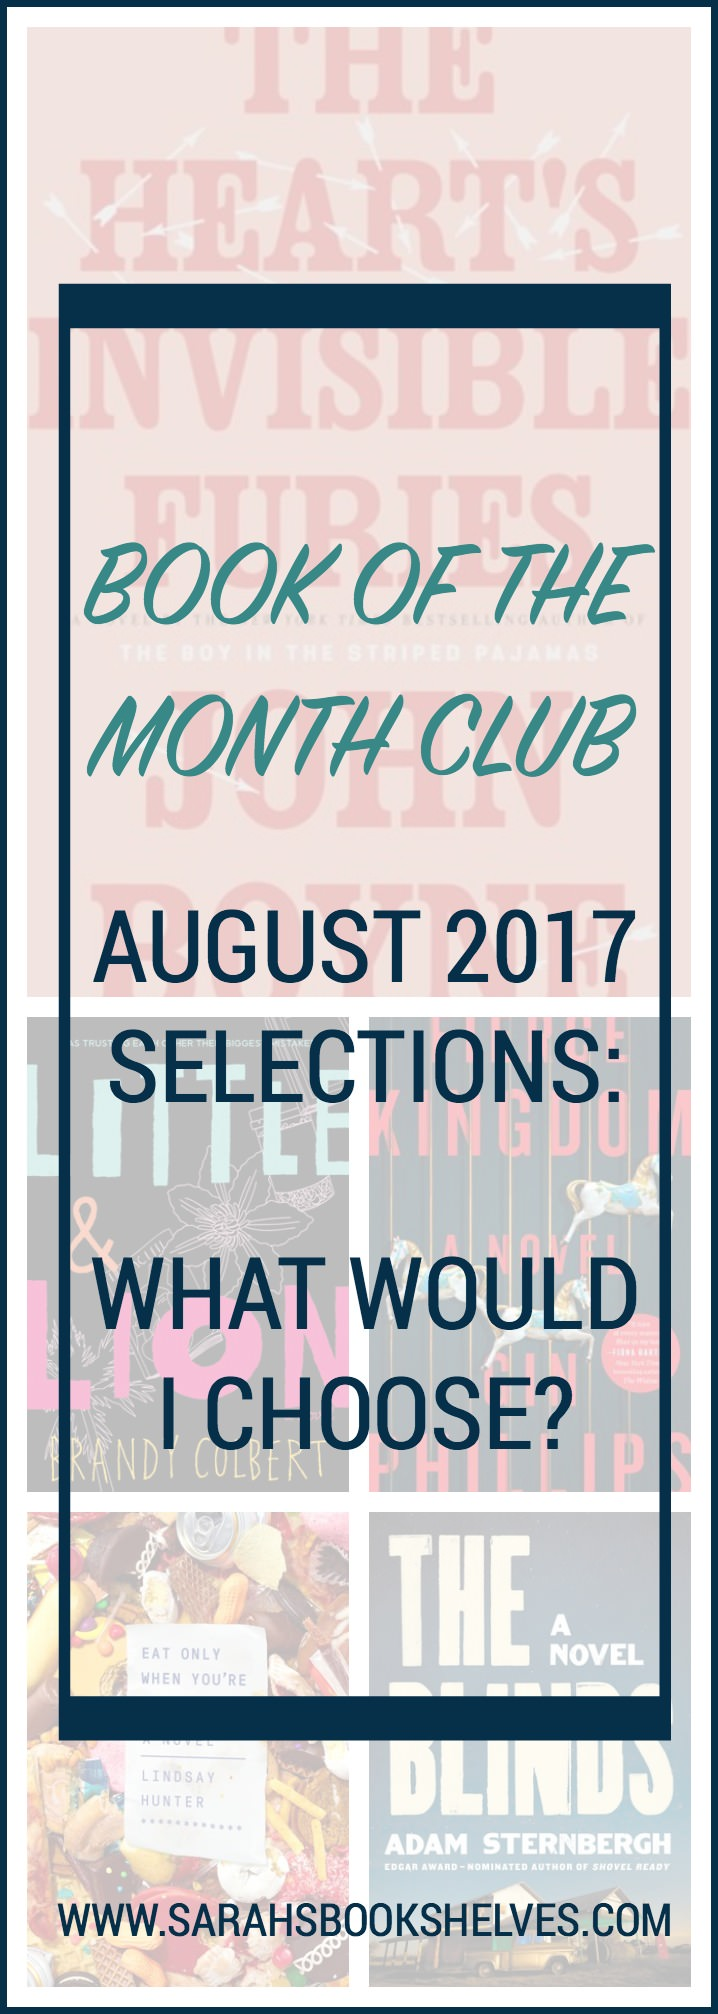 Book of the Month Club August 2017 Selections (What Would I Choose?): Check out my commentary on all the Book of the Month Club August 2017 selections & choose which one is best for you! Plus, new pricing!